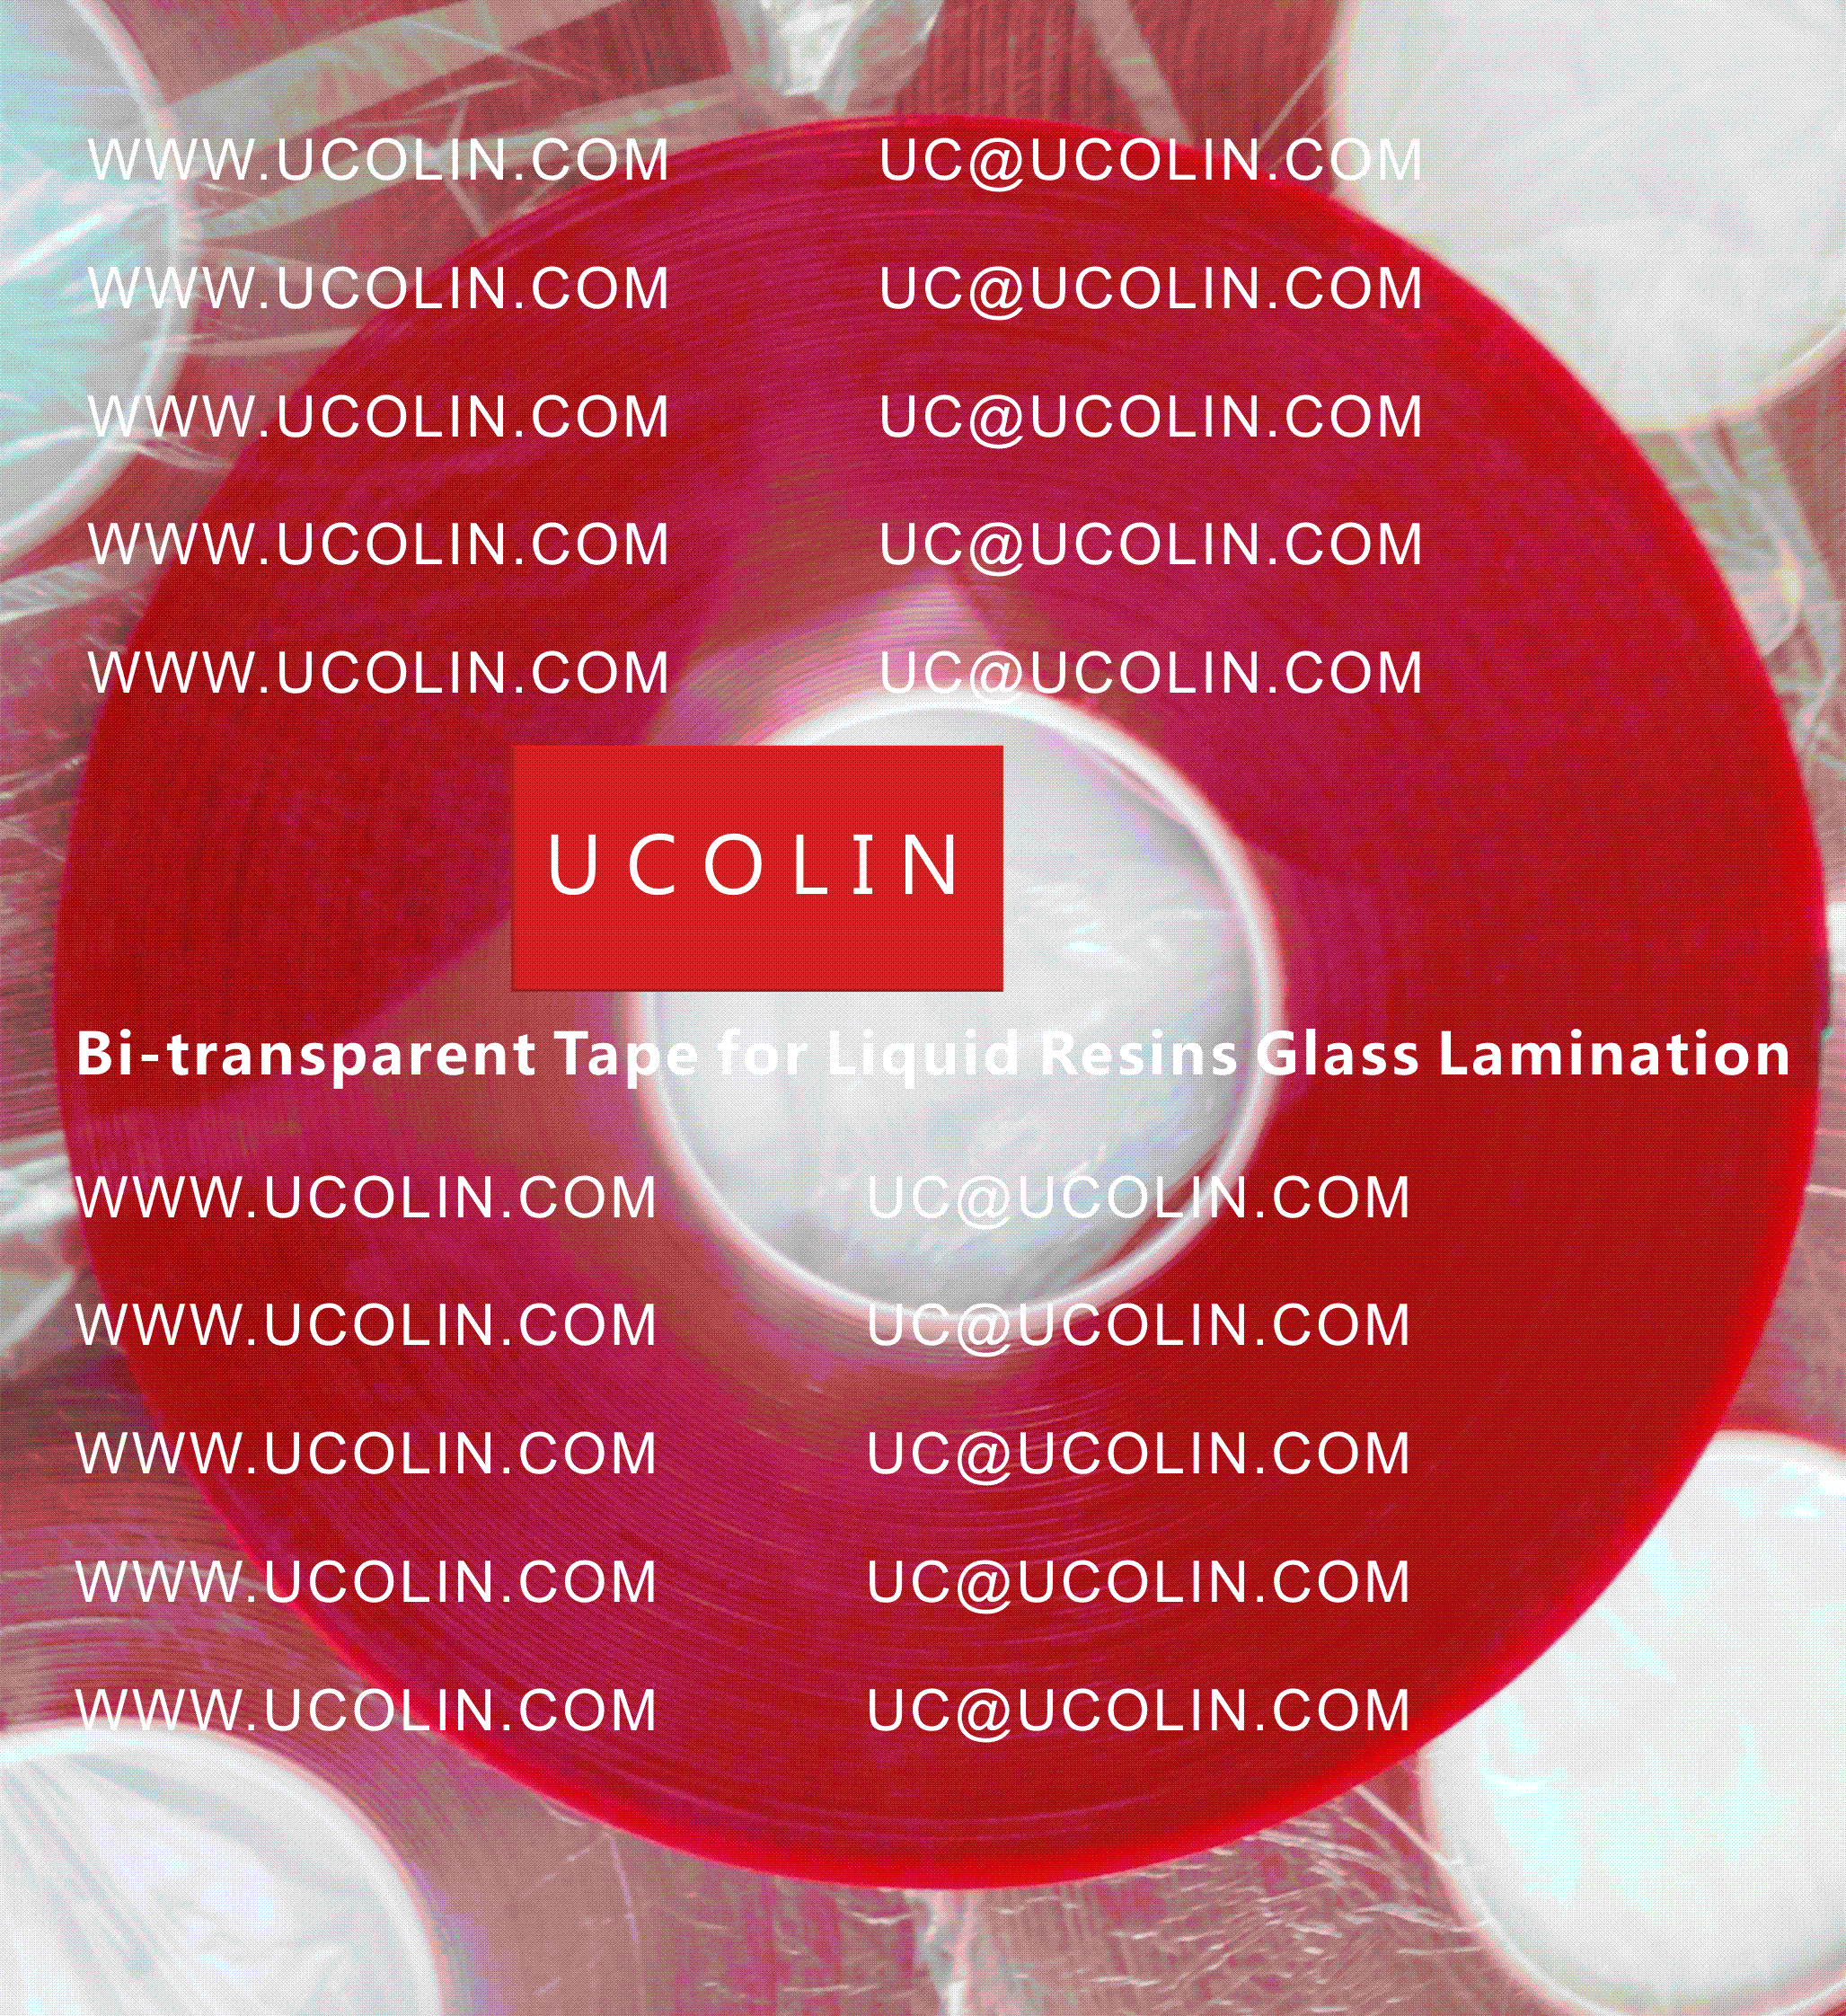 000 Bi-transparent Tape for Liquid Resins for Glass Lamination